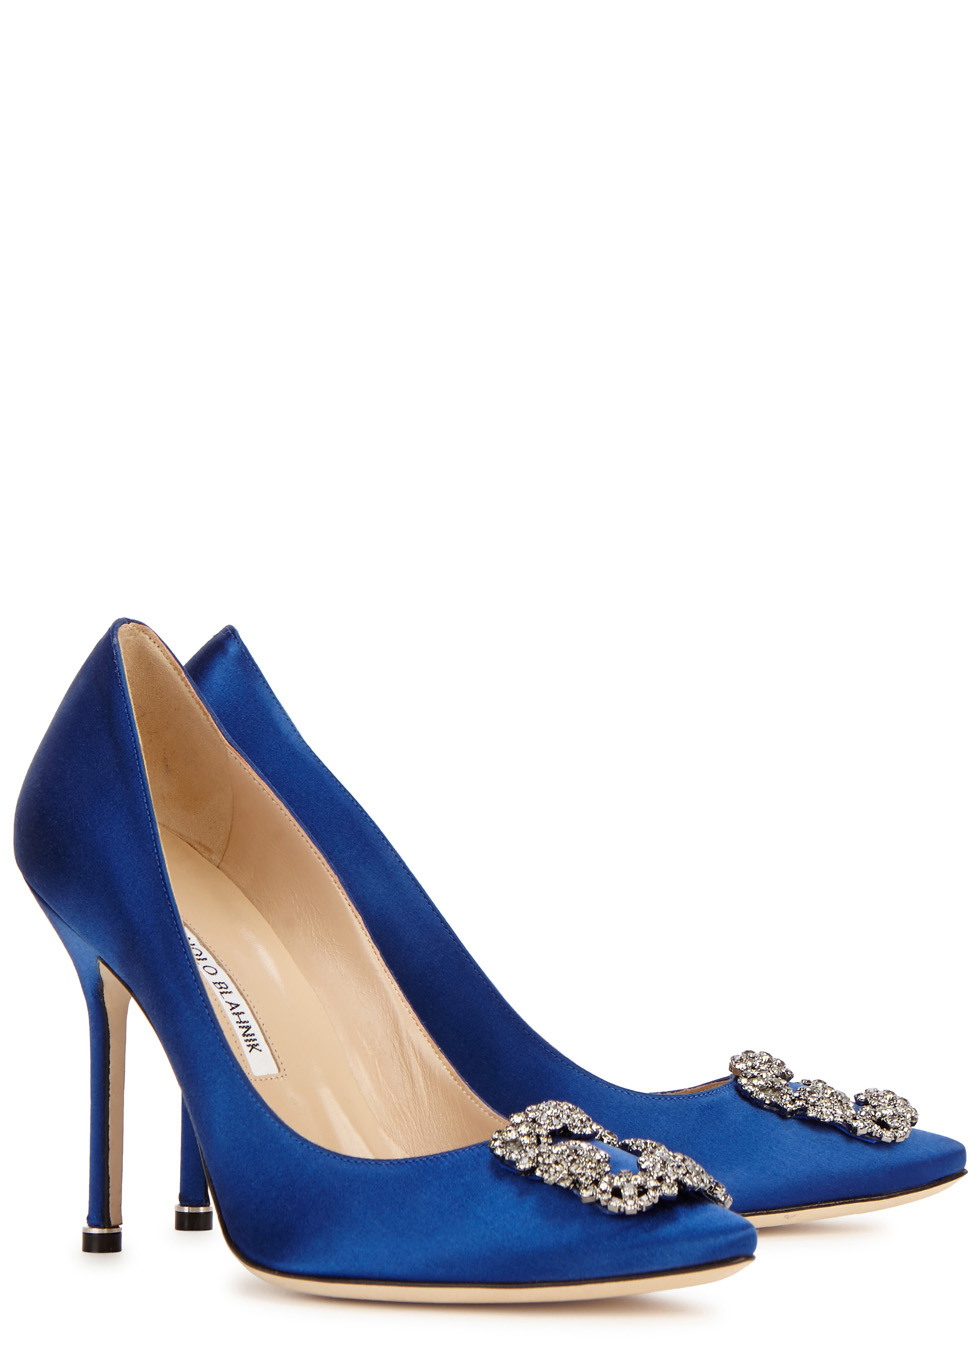 879cf4e555b85 ... coupon code for hangisi 105 royal blue silk satin pumps manolo blahnik  67b01 9851b